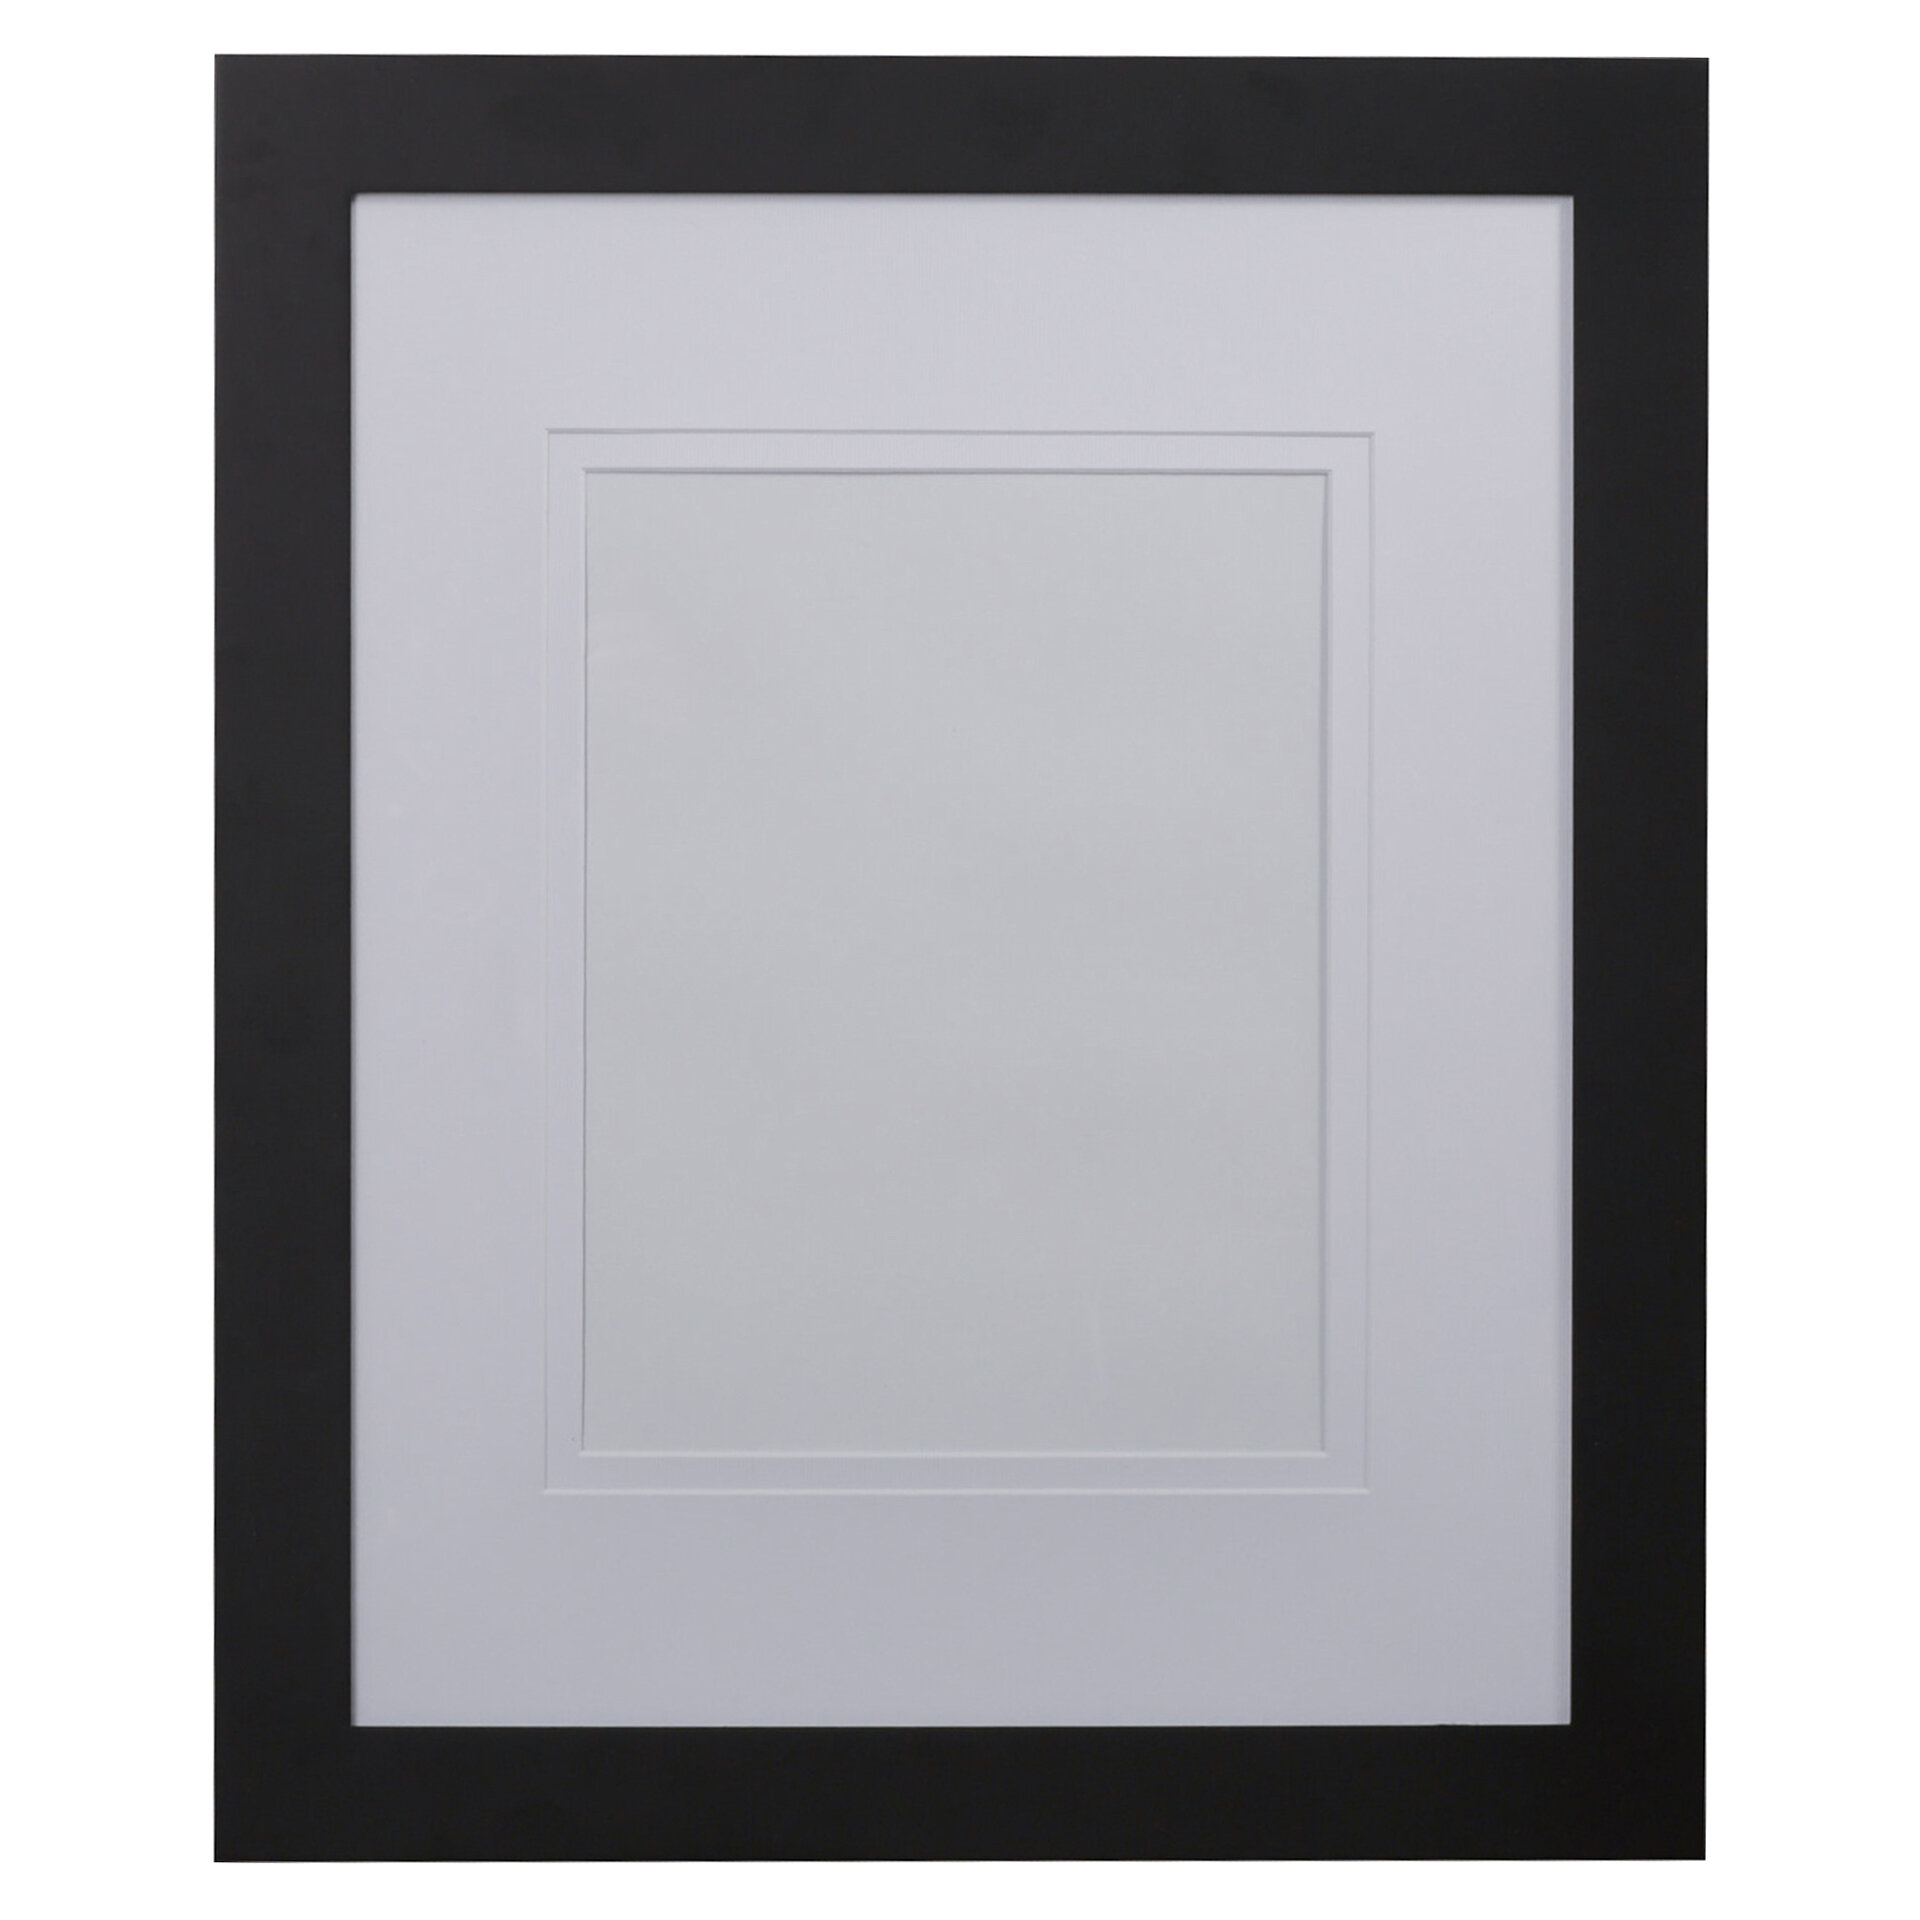 Malden manhattan picture frame reviews wayfair jeuxipadfo Images